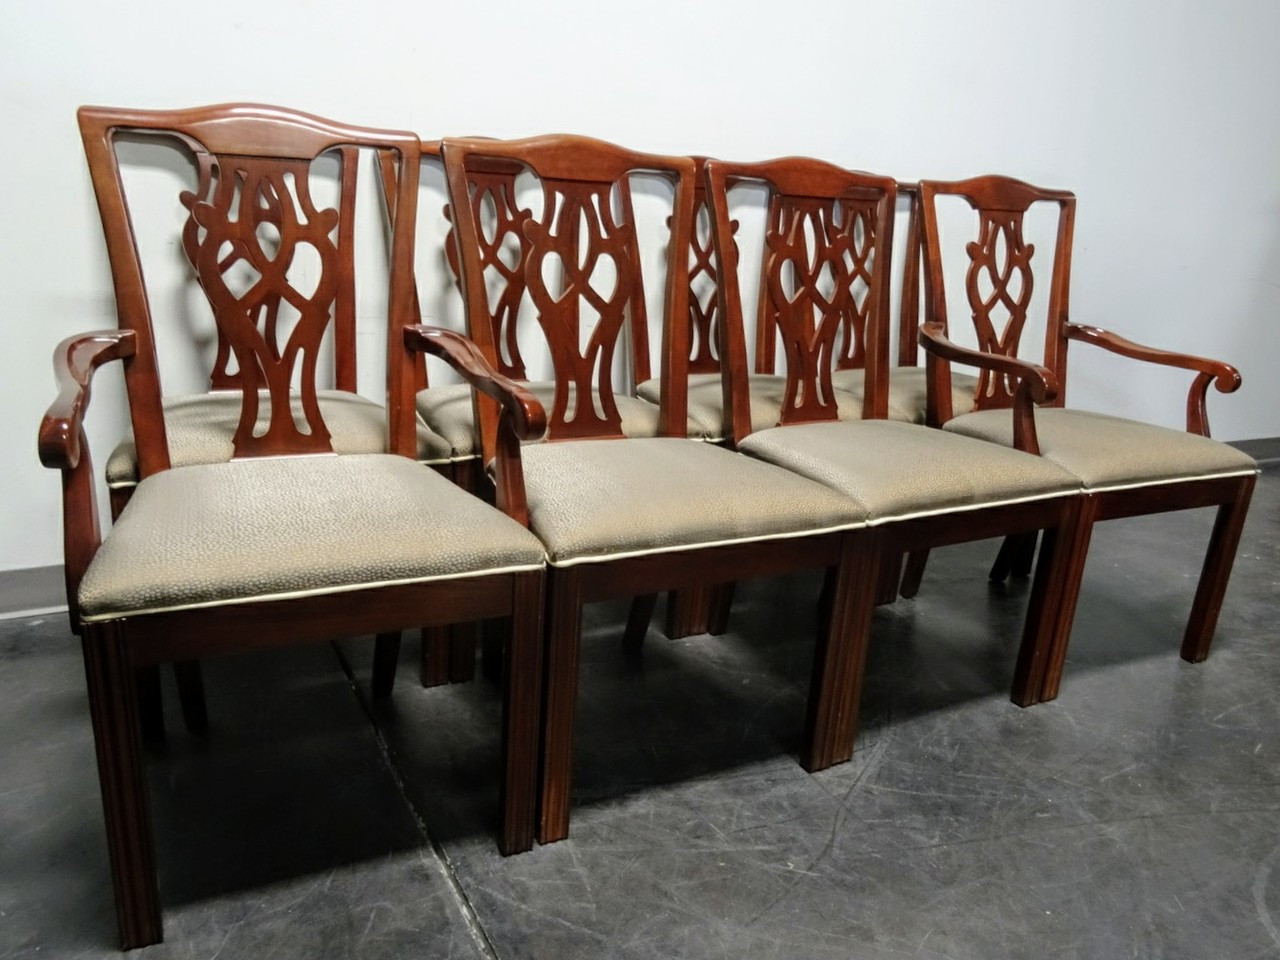 High Quality SOLD OUT   DREXEL Chippendale Straight Leg Mahogany Dining Chairs   Set Of 8